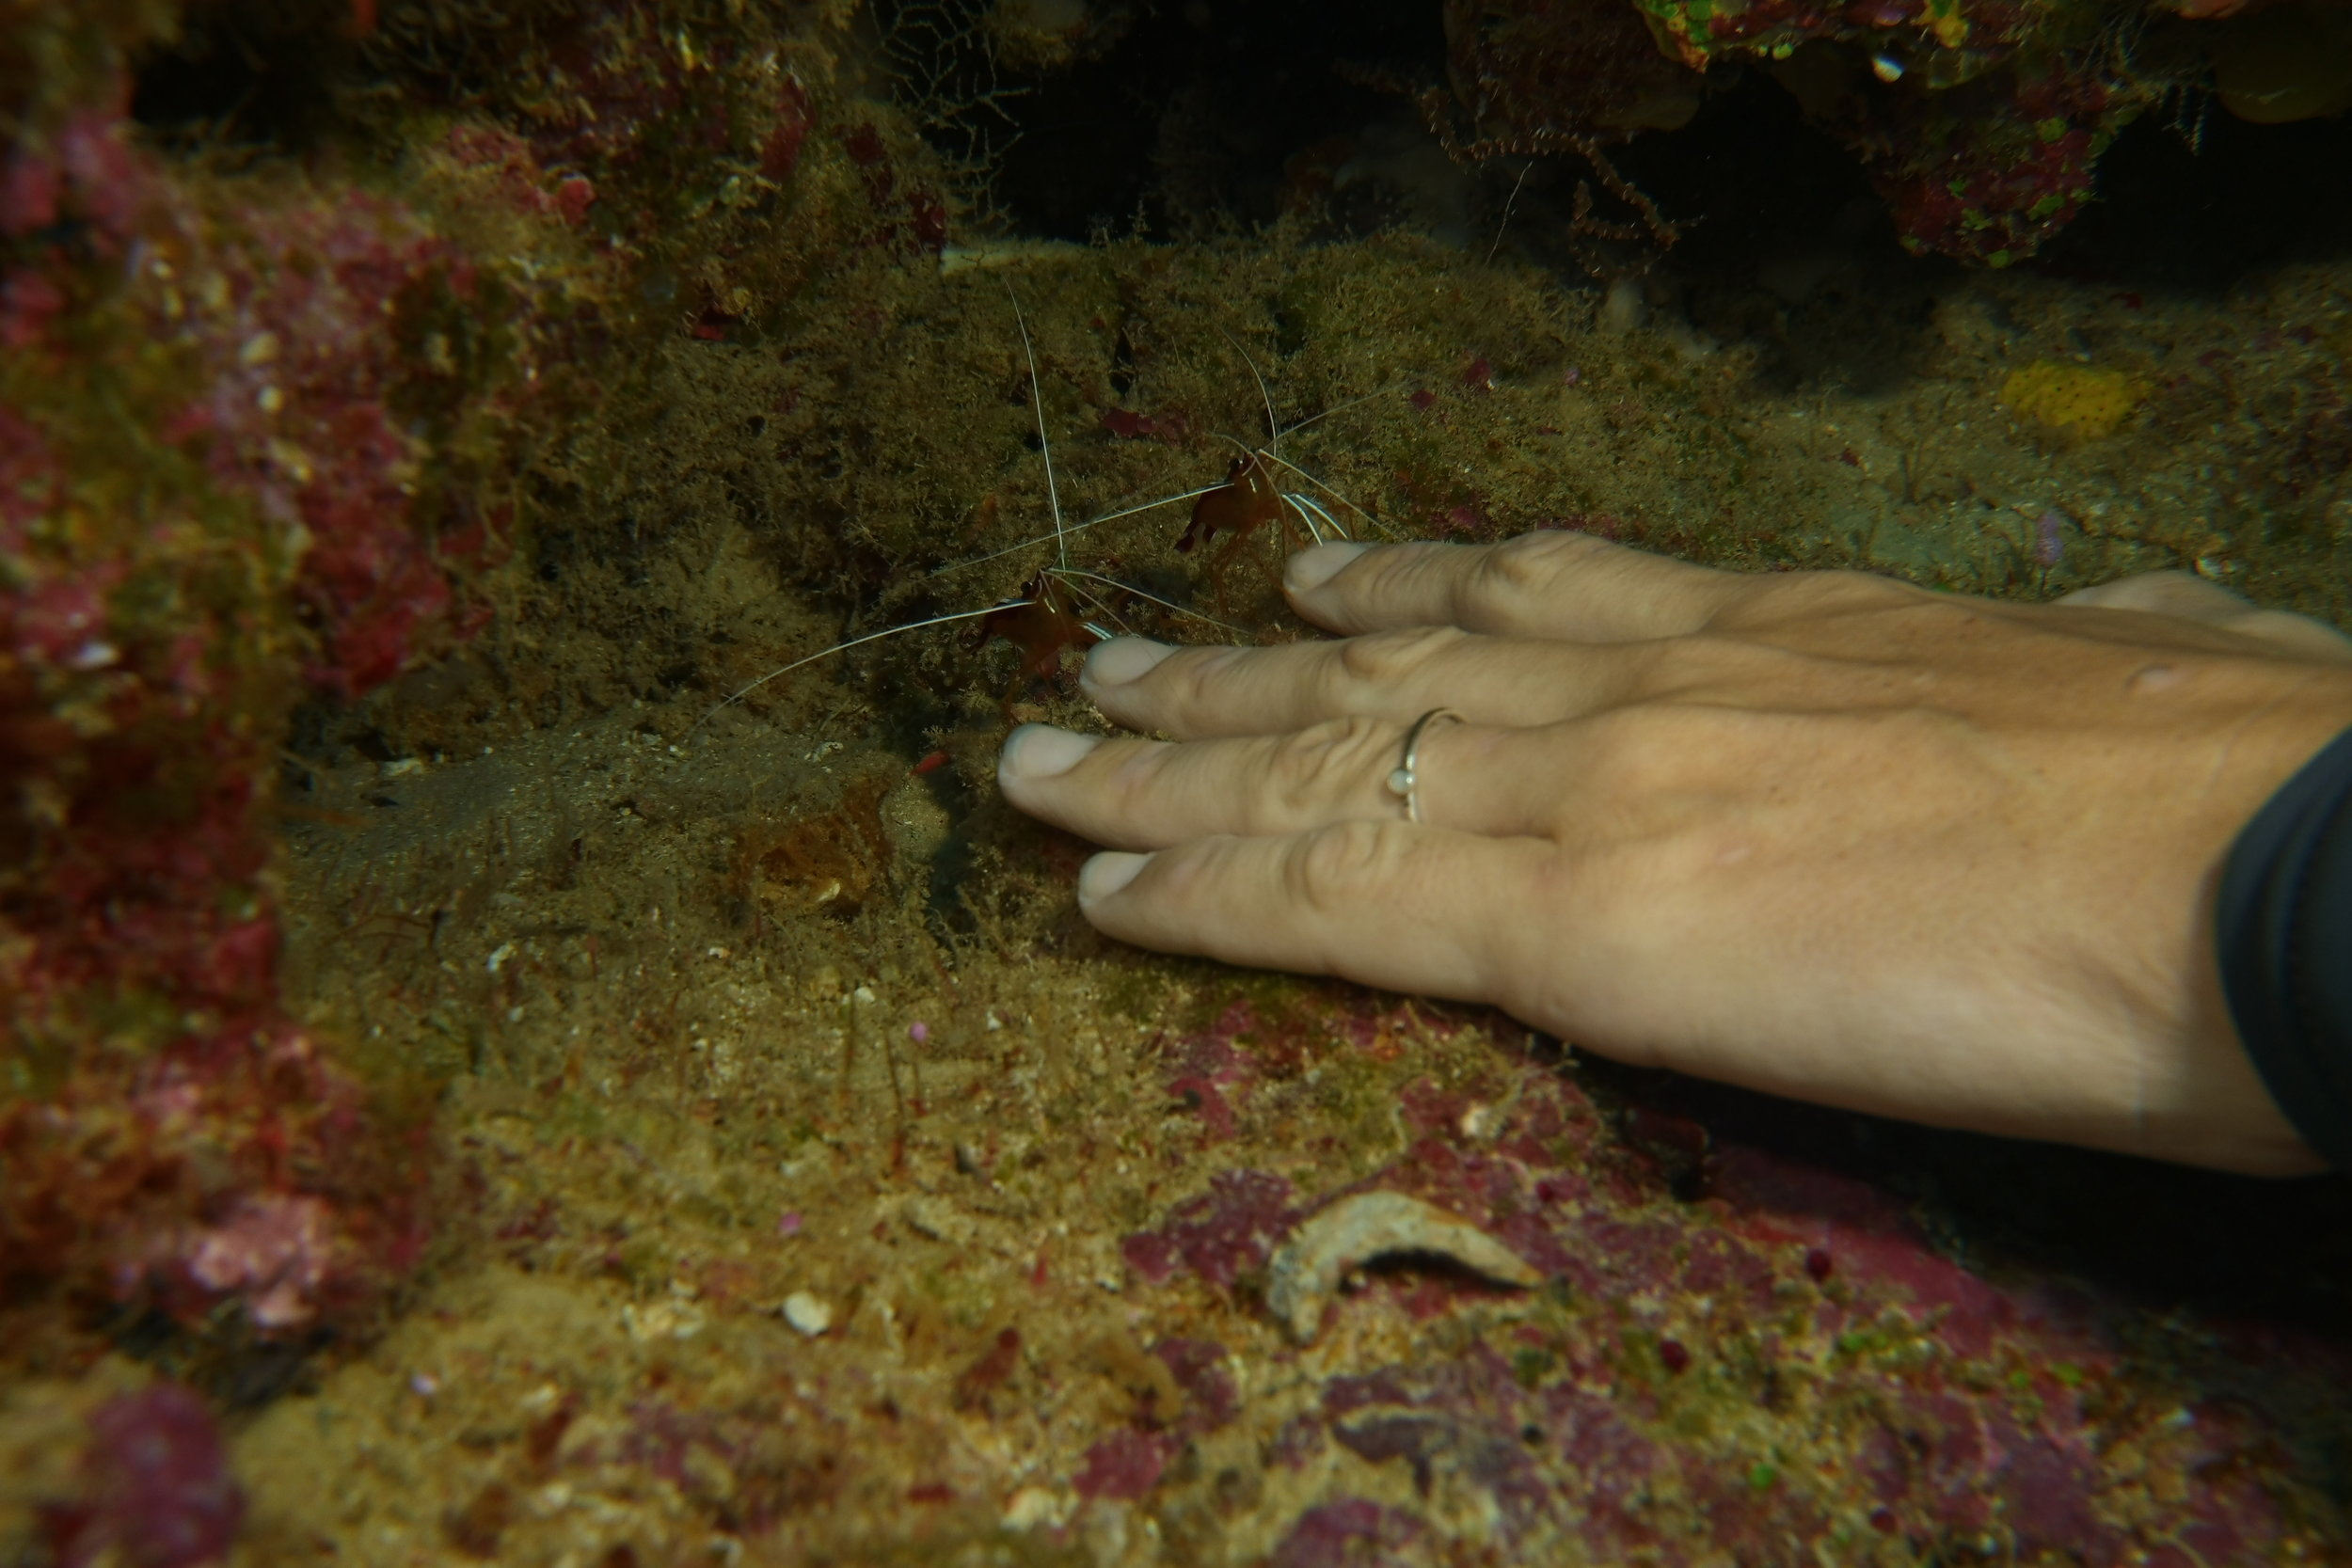 Cleaner shrimp working on one of our dive masters (it tickled when they cleaned mine)